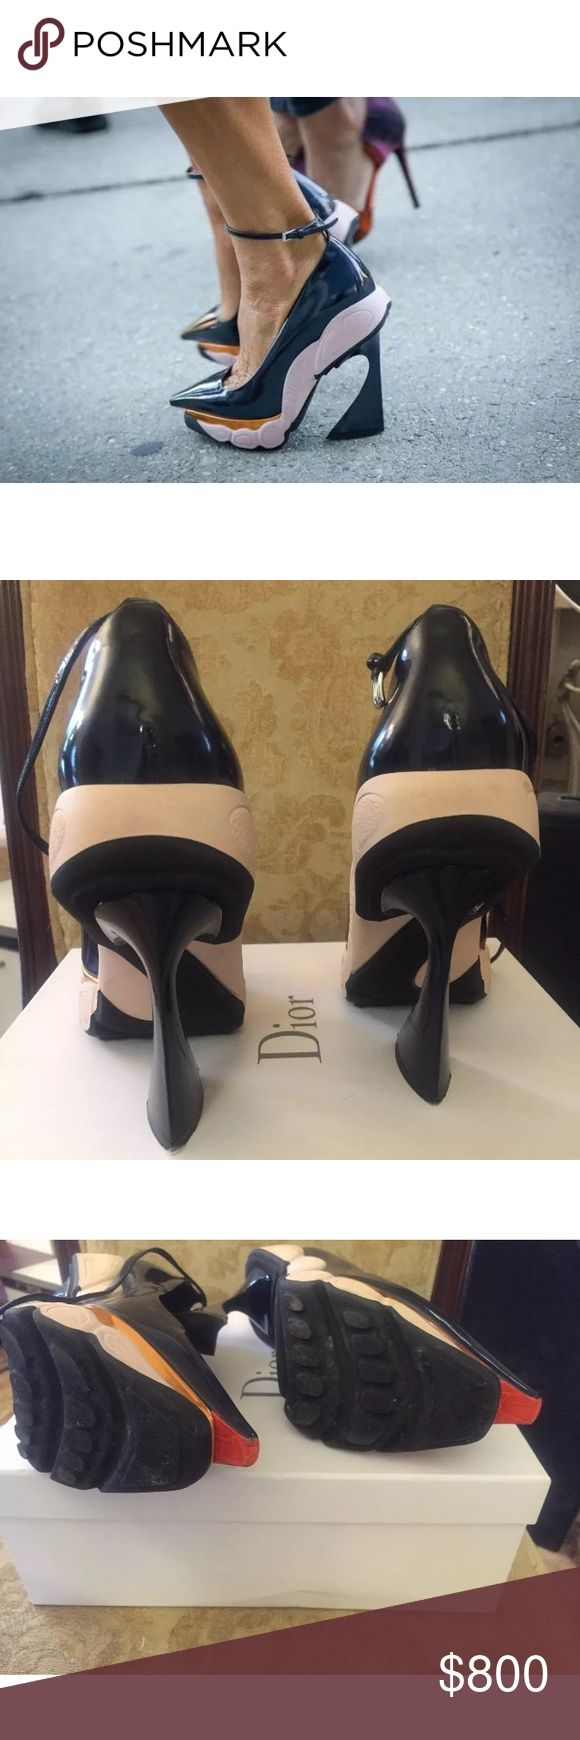 Dior Runway Fusion Raf Heels Pumps 37 US 6.5 7 Christian Dior navy patent runway heels size 37 will fit a 6.5 / 7 brand new never worn Christian Dior Shoes Heels